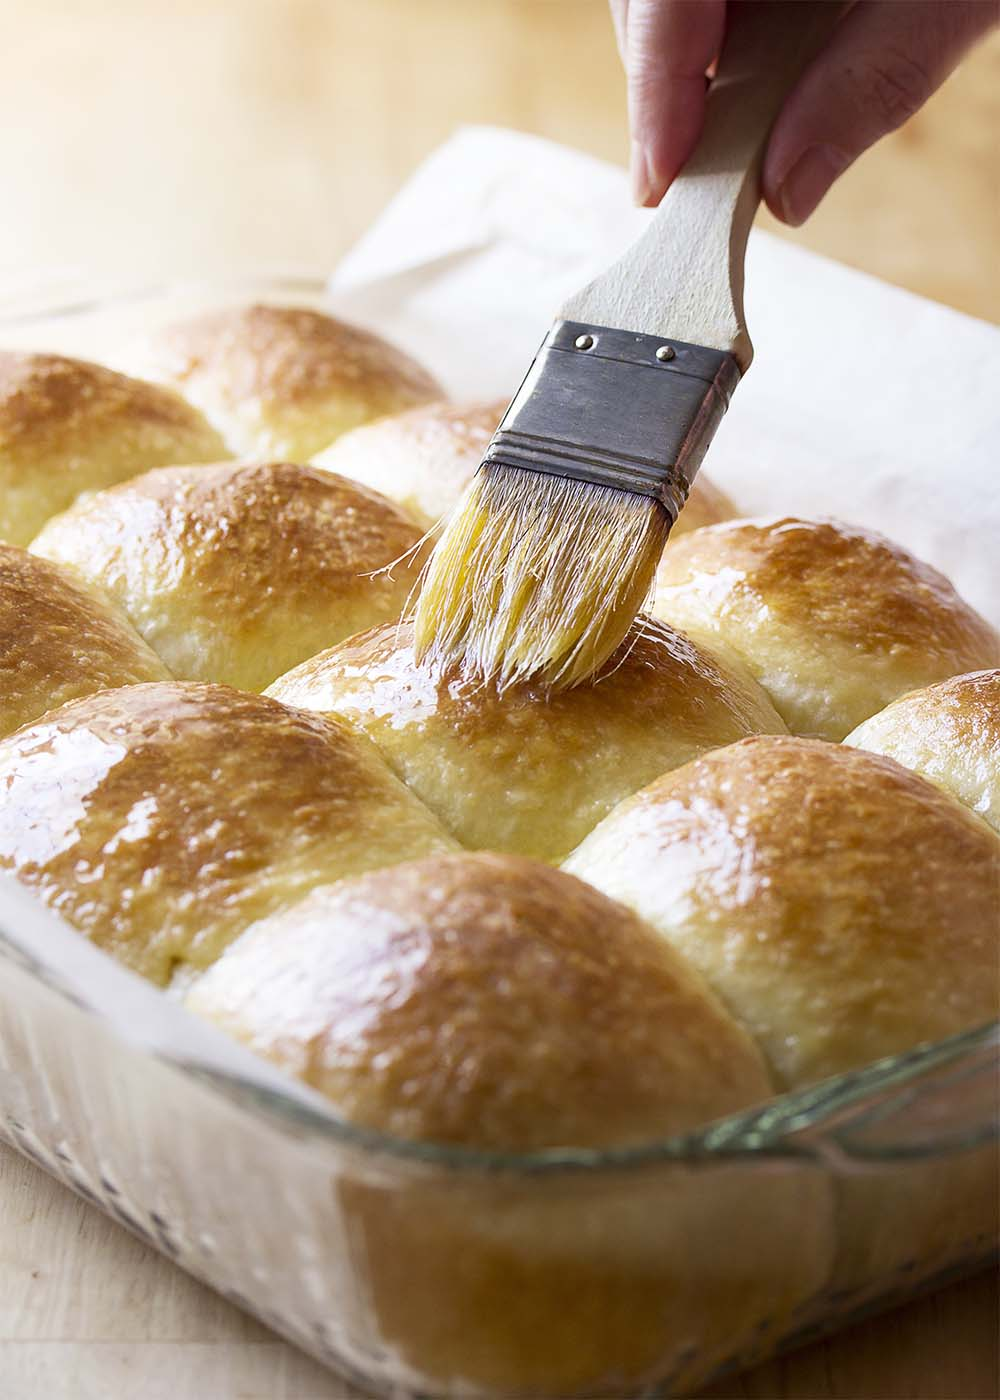 A pan of no-knead dinner rolls hot from the oven being brushed with melted butter.